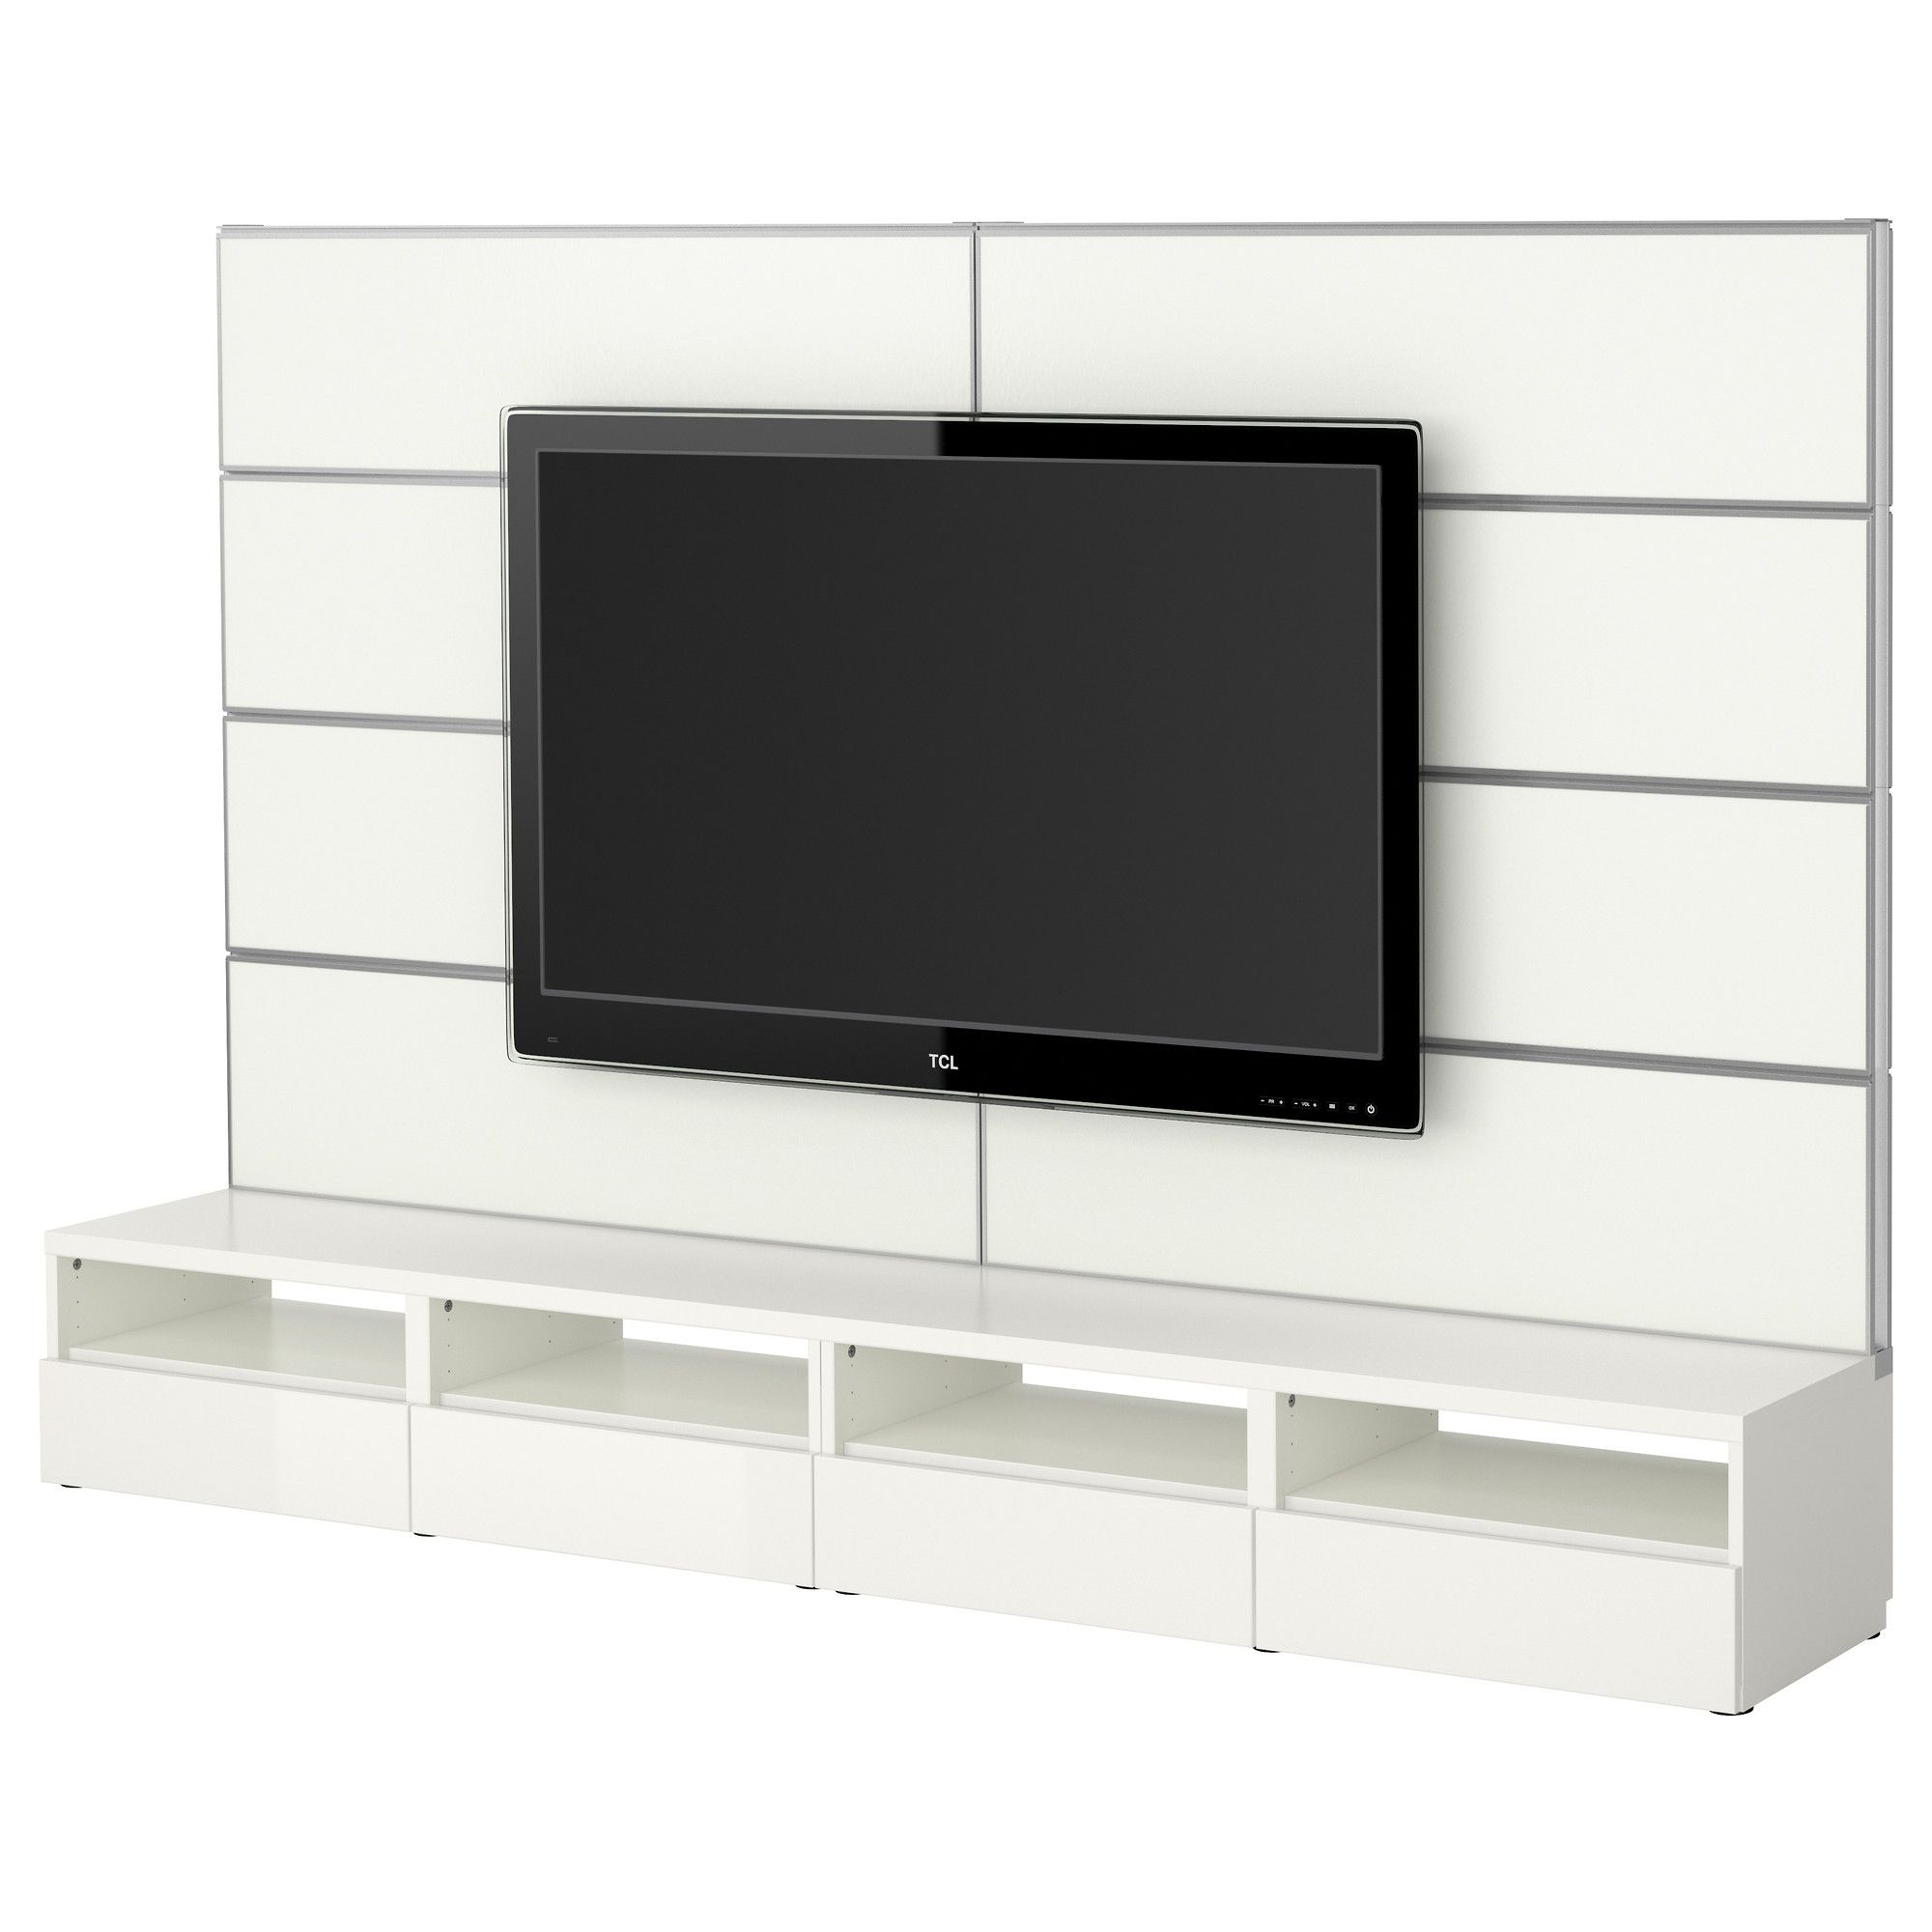 elvarli | tv storage and storage, Gestaltungsideen